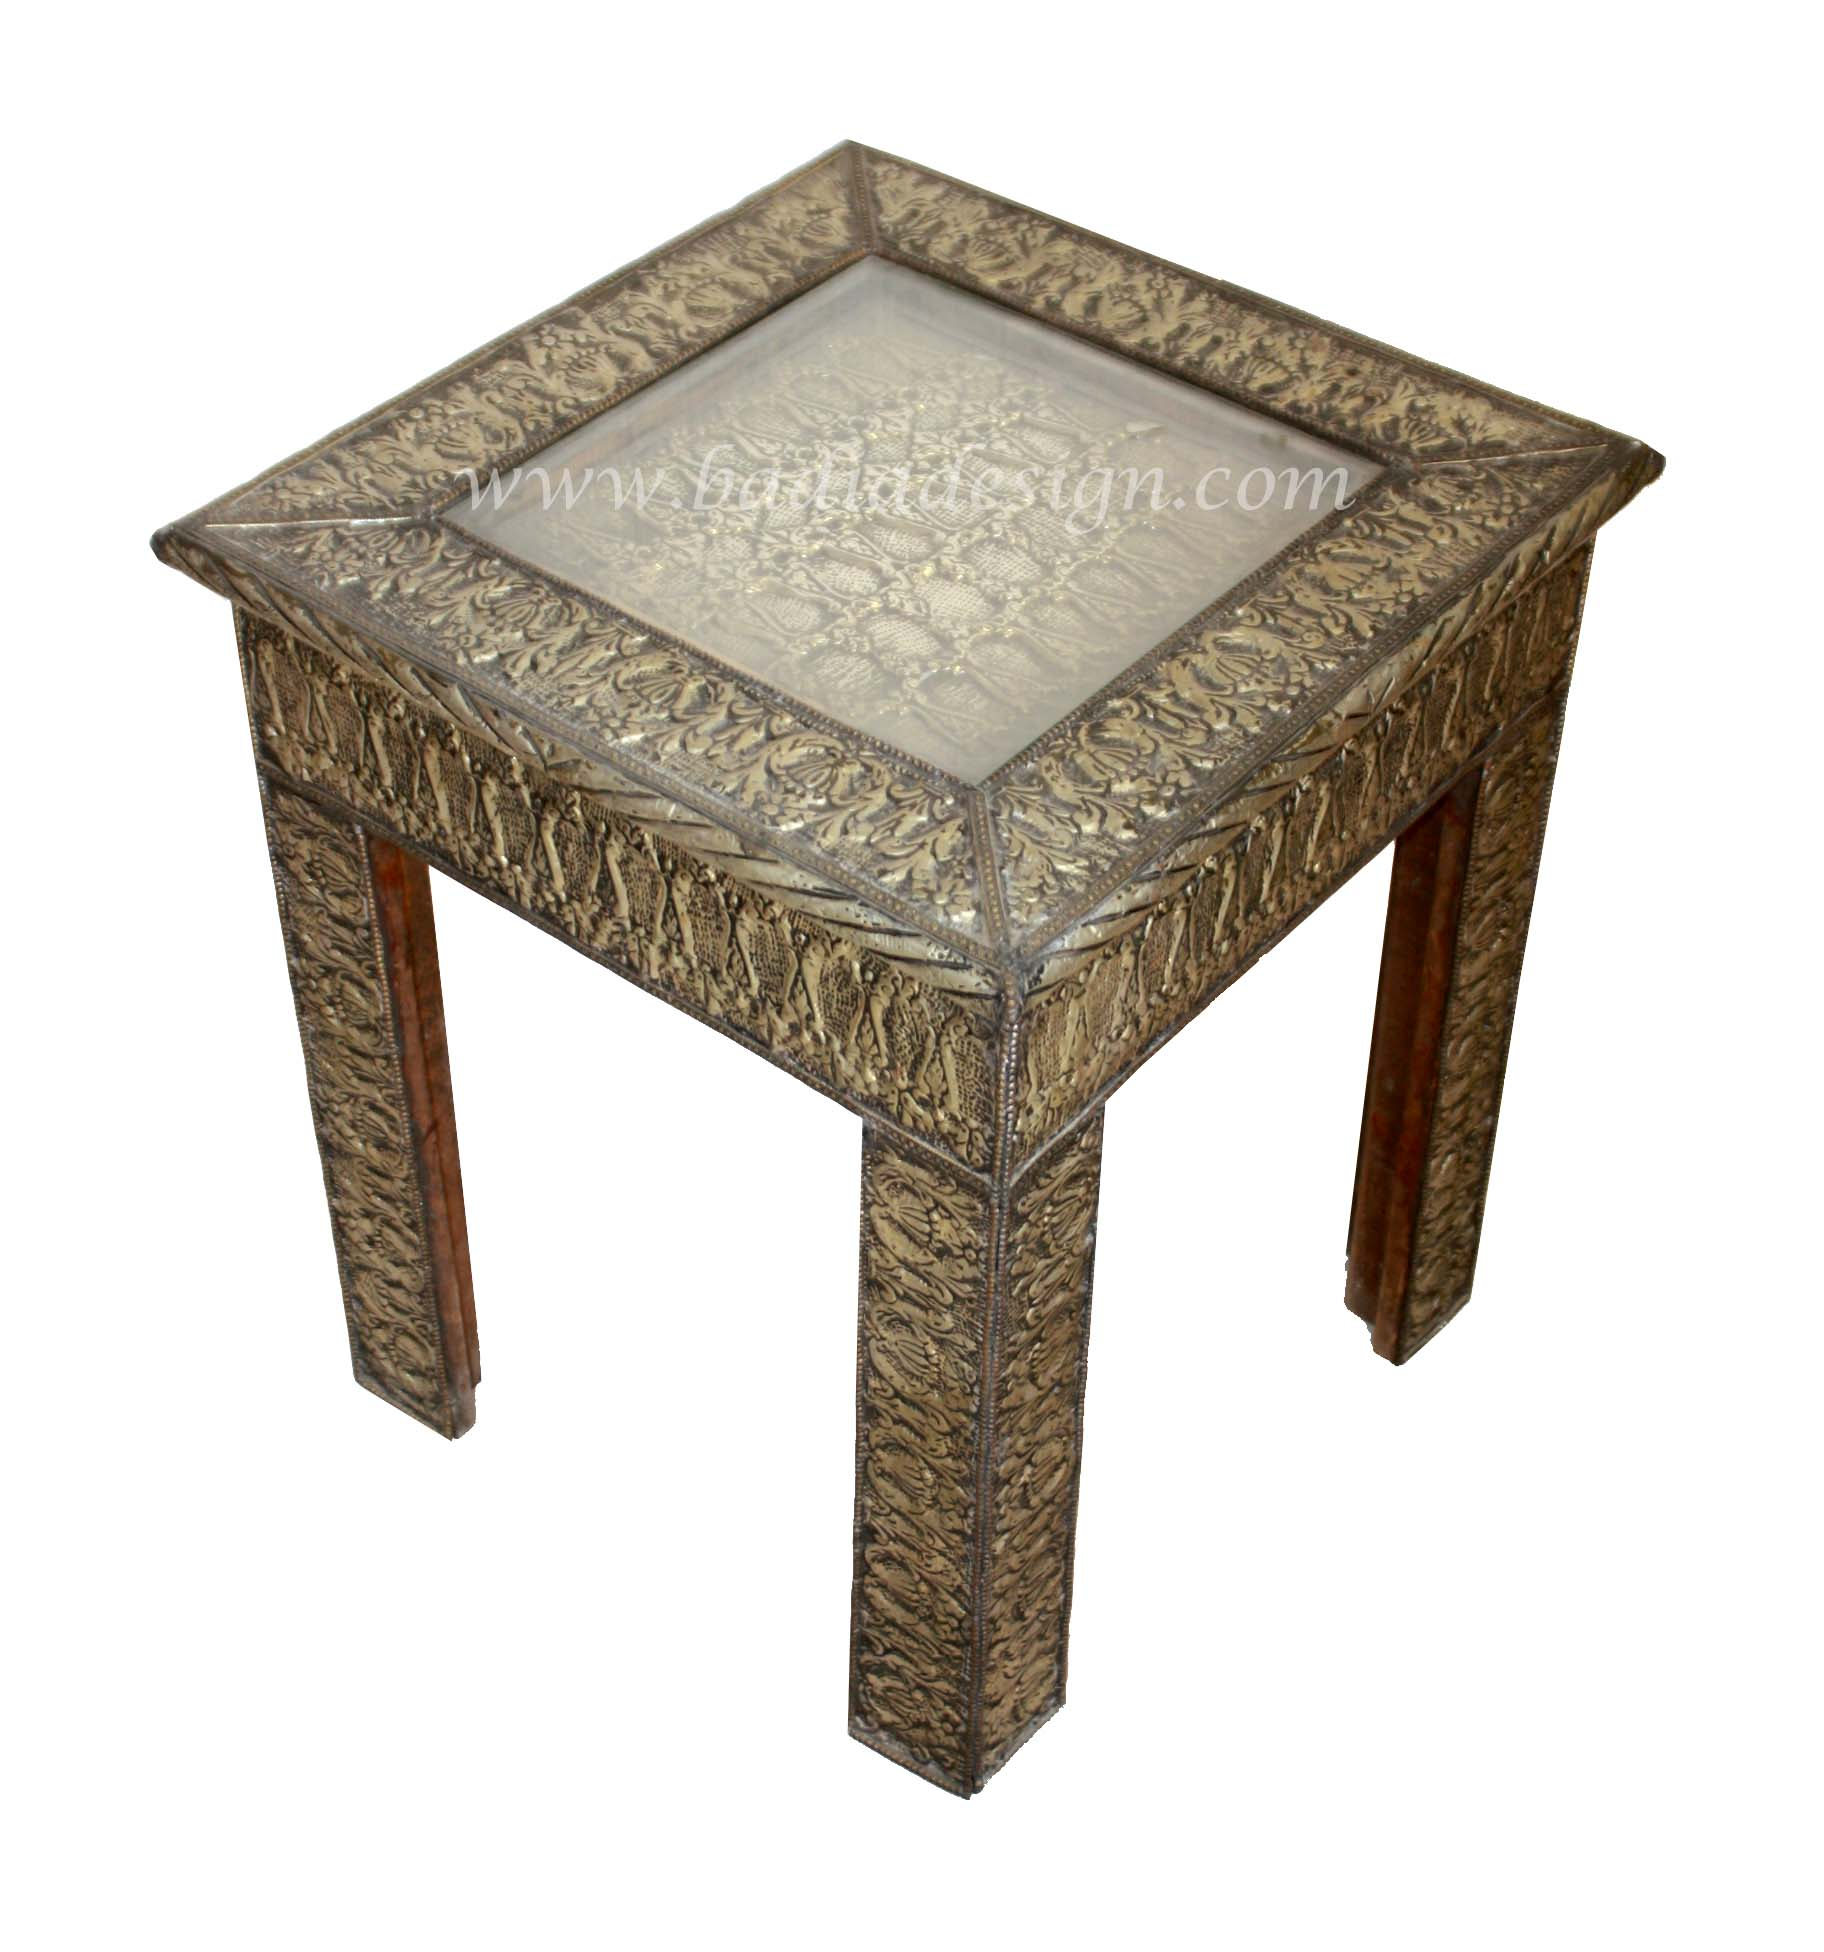 Moroccan Silver Nickel Coffee Table